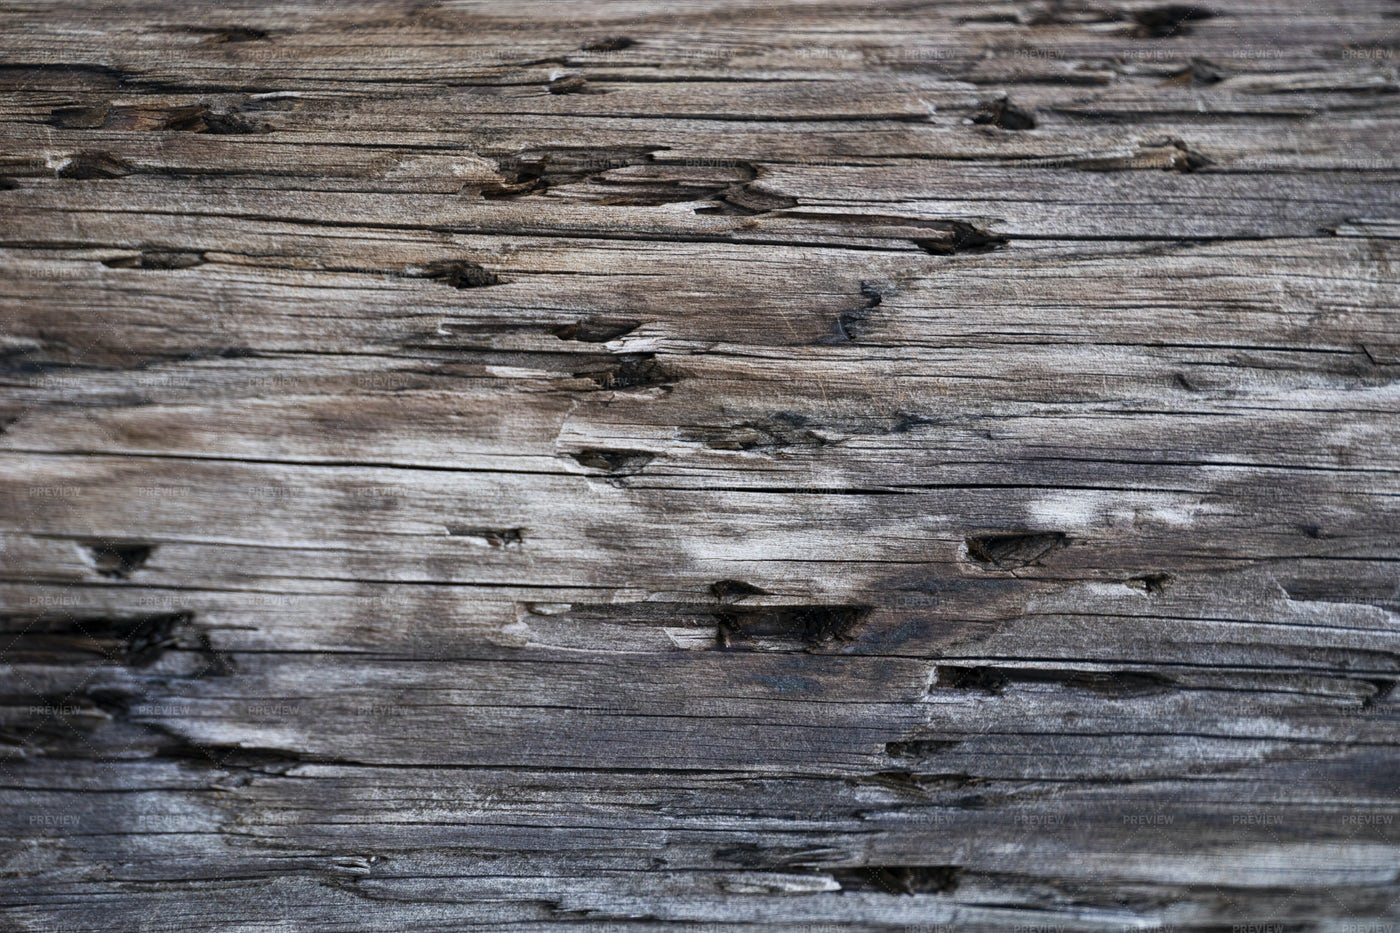 Old Wood With Holes: Stock Photos